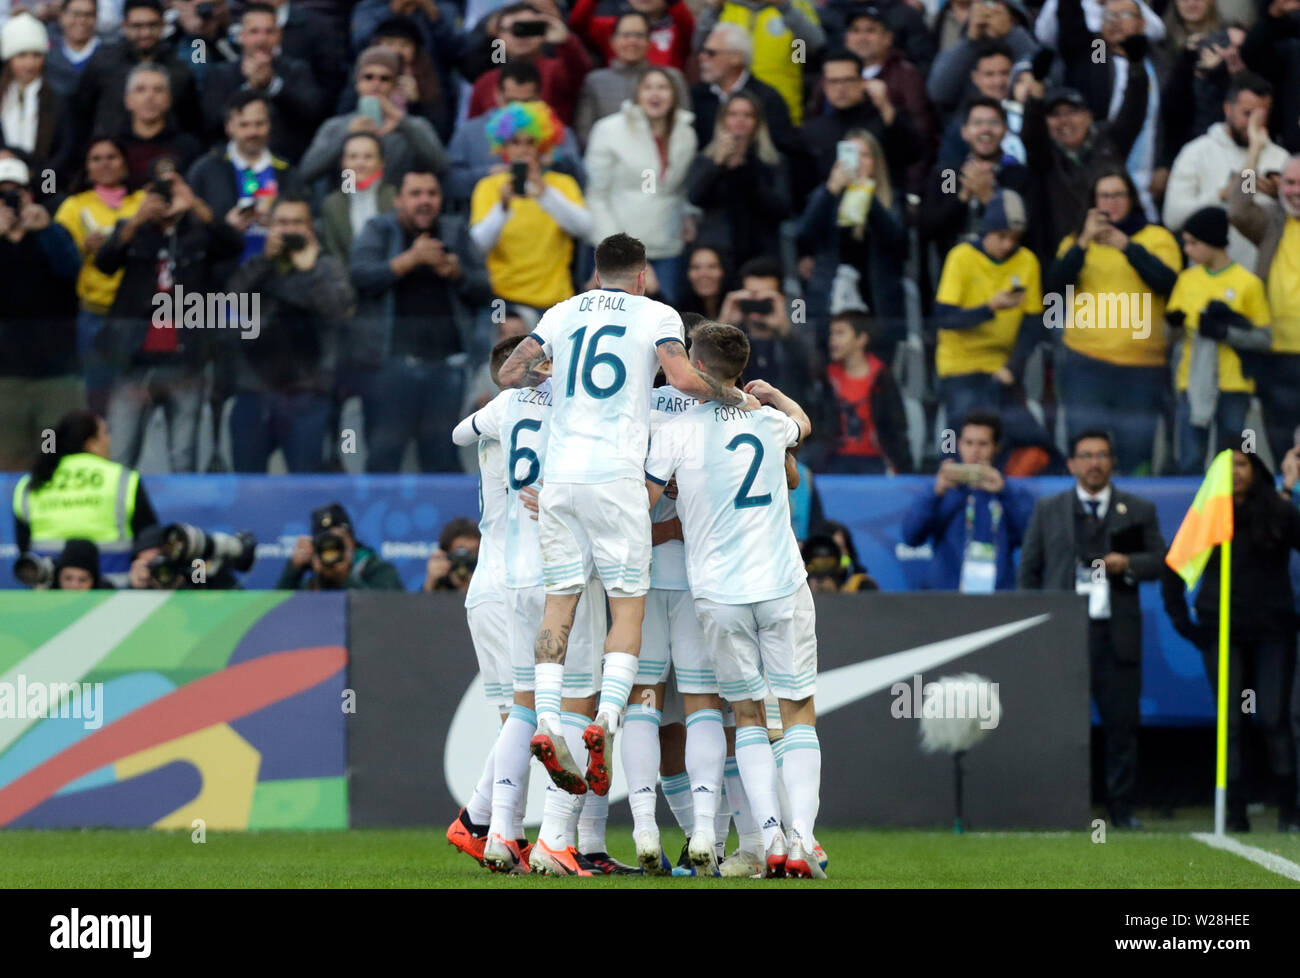 Sao Paulo, Brazil. 6th July, 2019. Argentina's players celebrate a goal during the 3rd place match of Copa America 2019 between Argentina and Chile in Sao Paulo, Brazil, July 6, 2019. Credit: Francisco Canedo/Xinhua/Alamy Live News - Stock Image